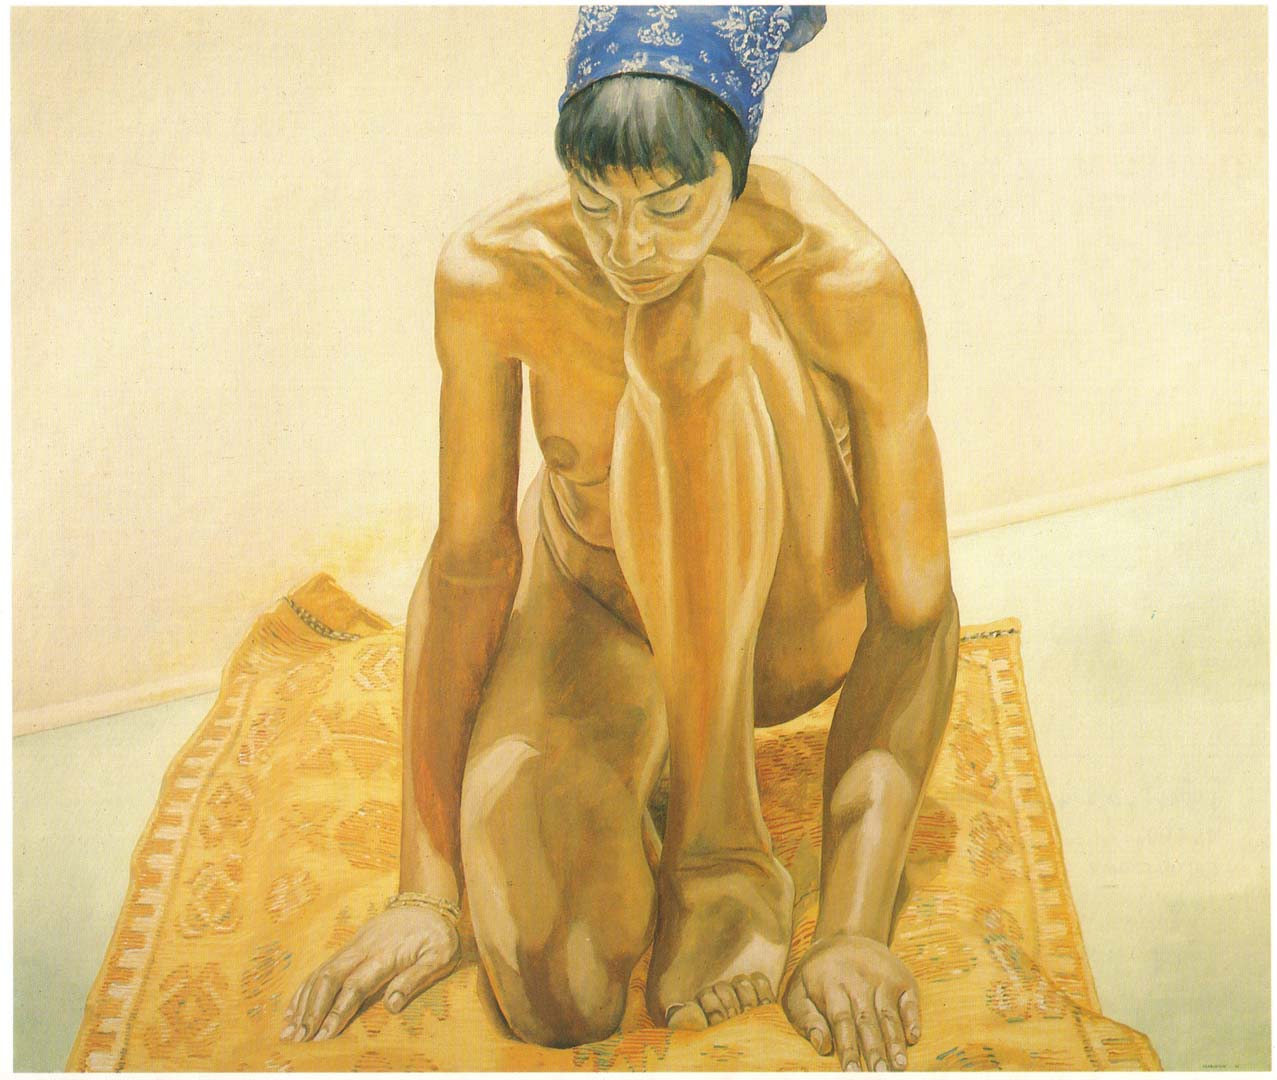 1969 Crouching Nude with Bandana Oil on Canvas 64 x 72